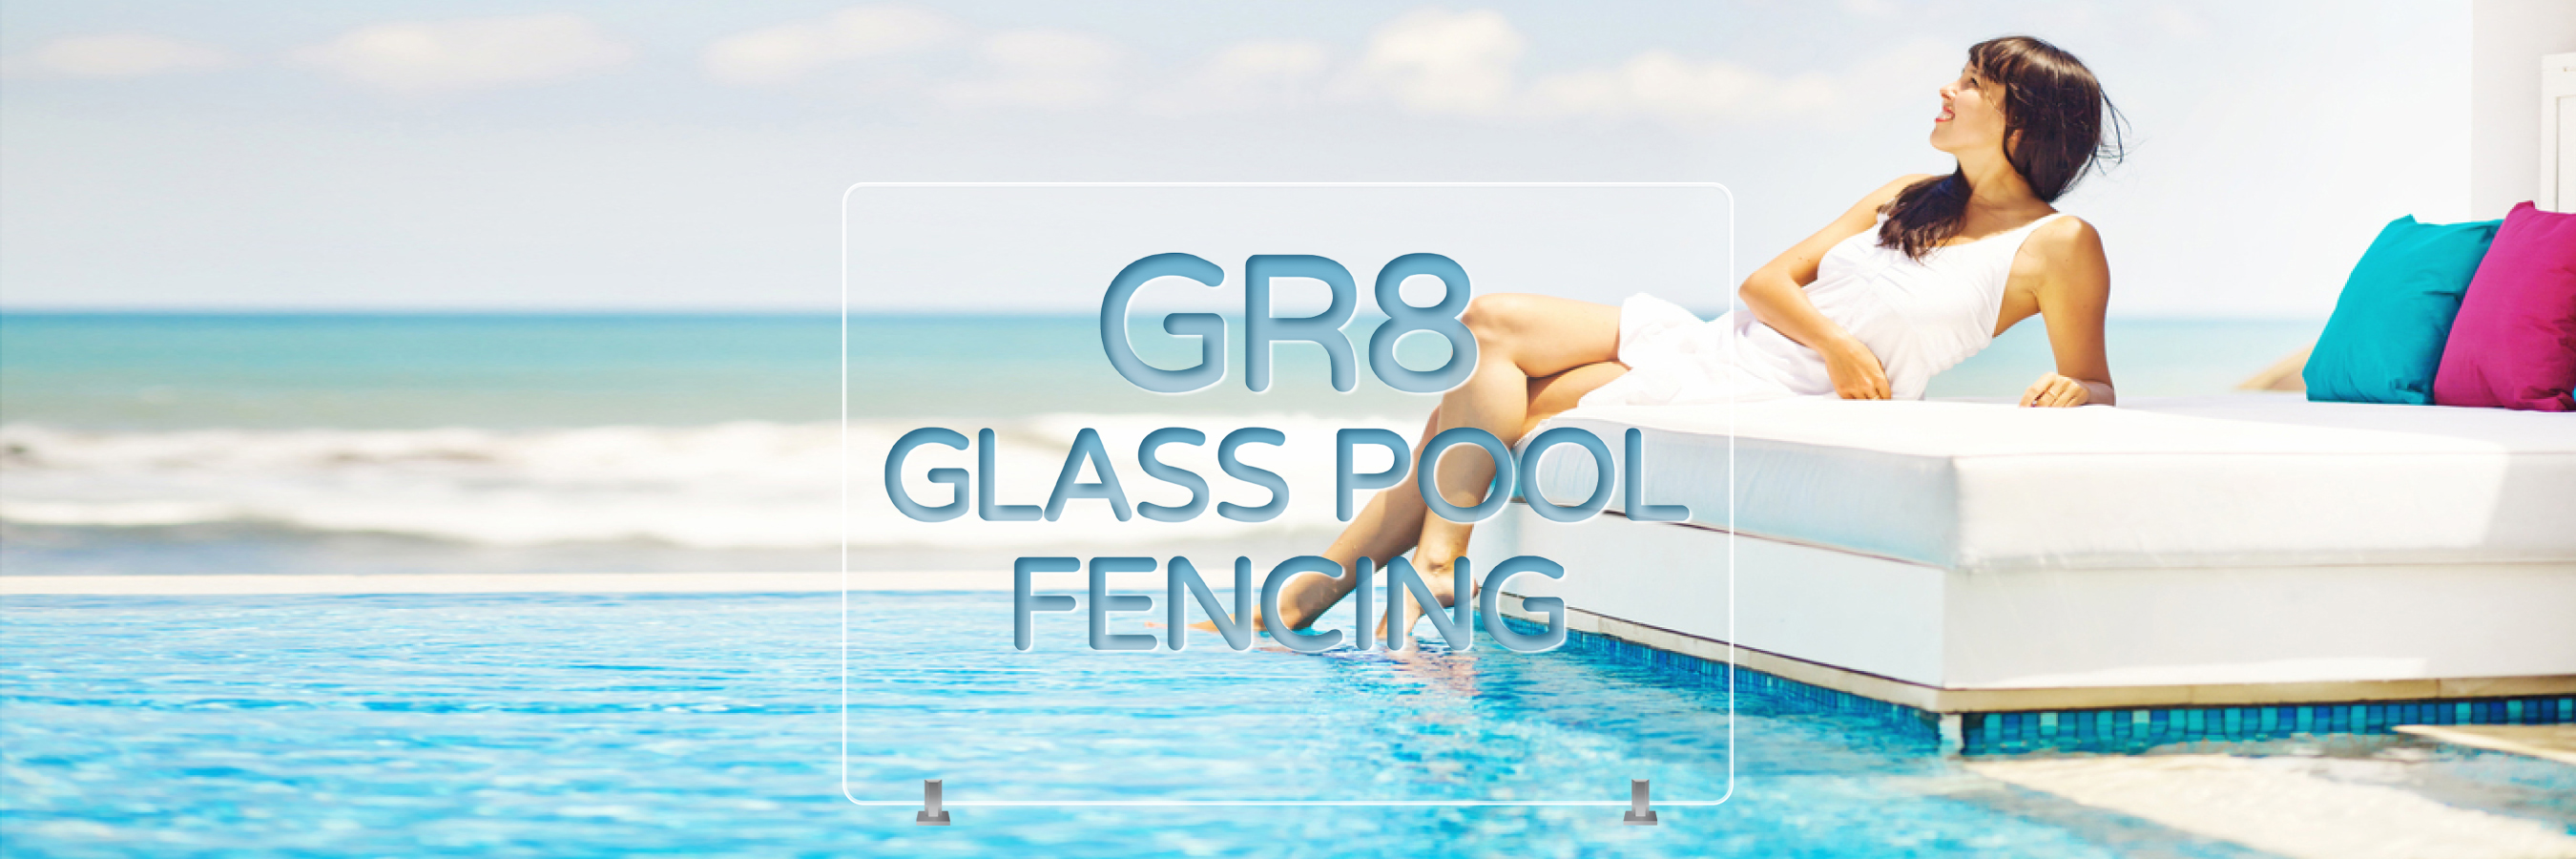 Gr8 Glass Frameless Glass Pool Fencing Balustrading Perth